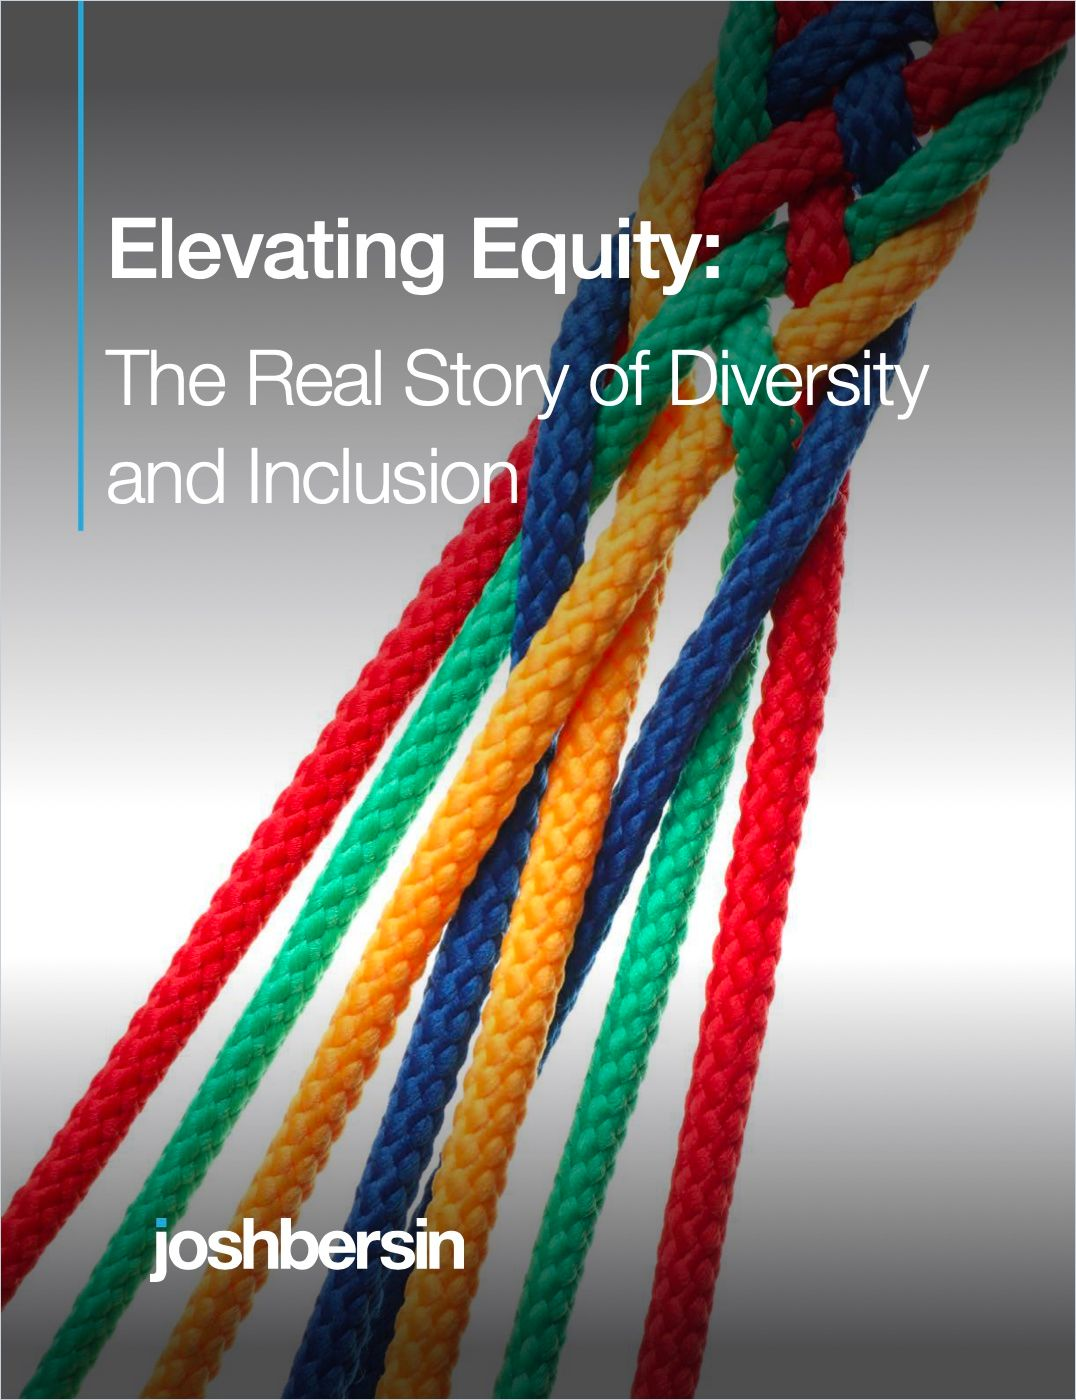 Image of: Elevating Equity